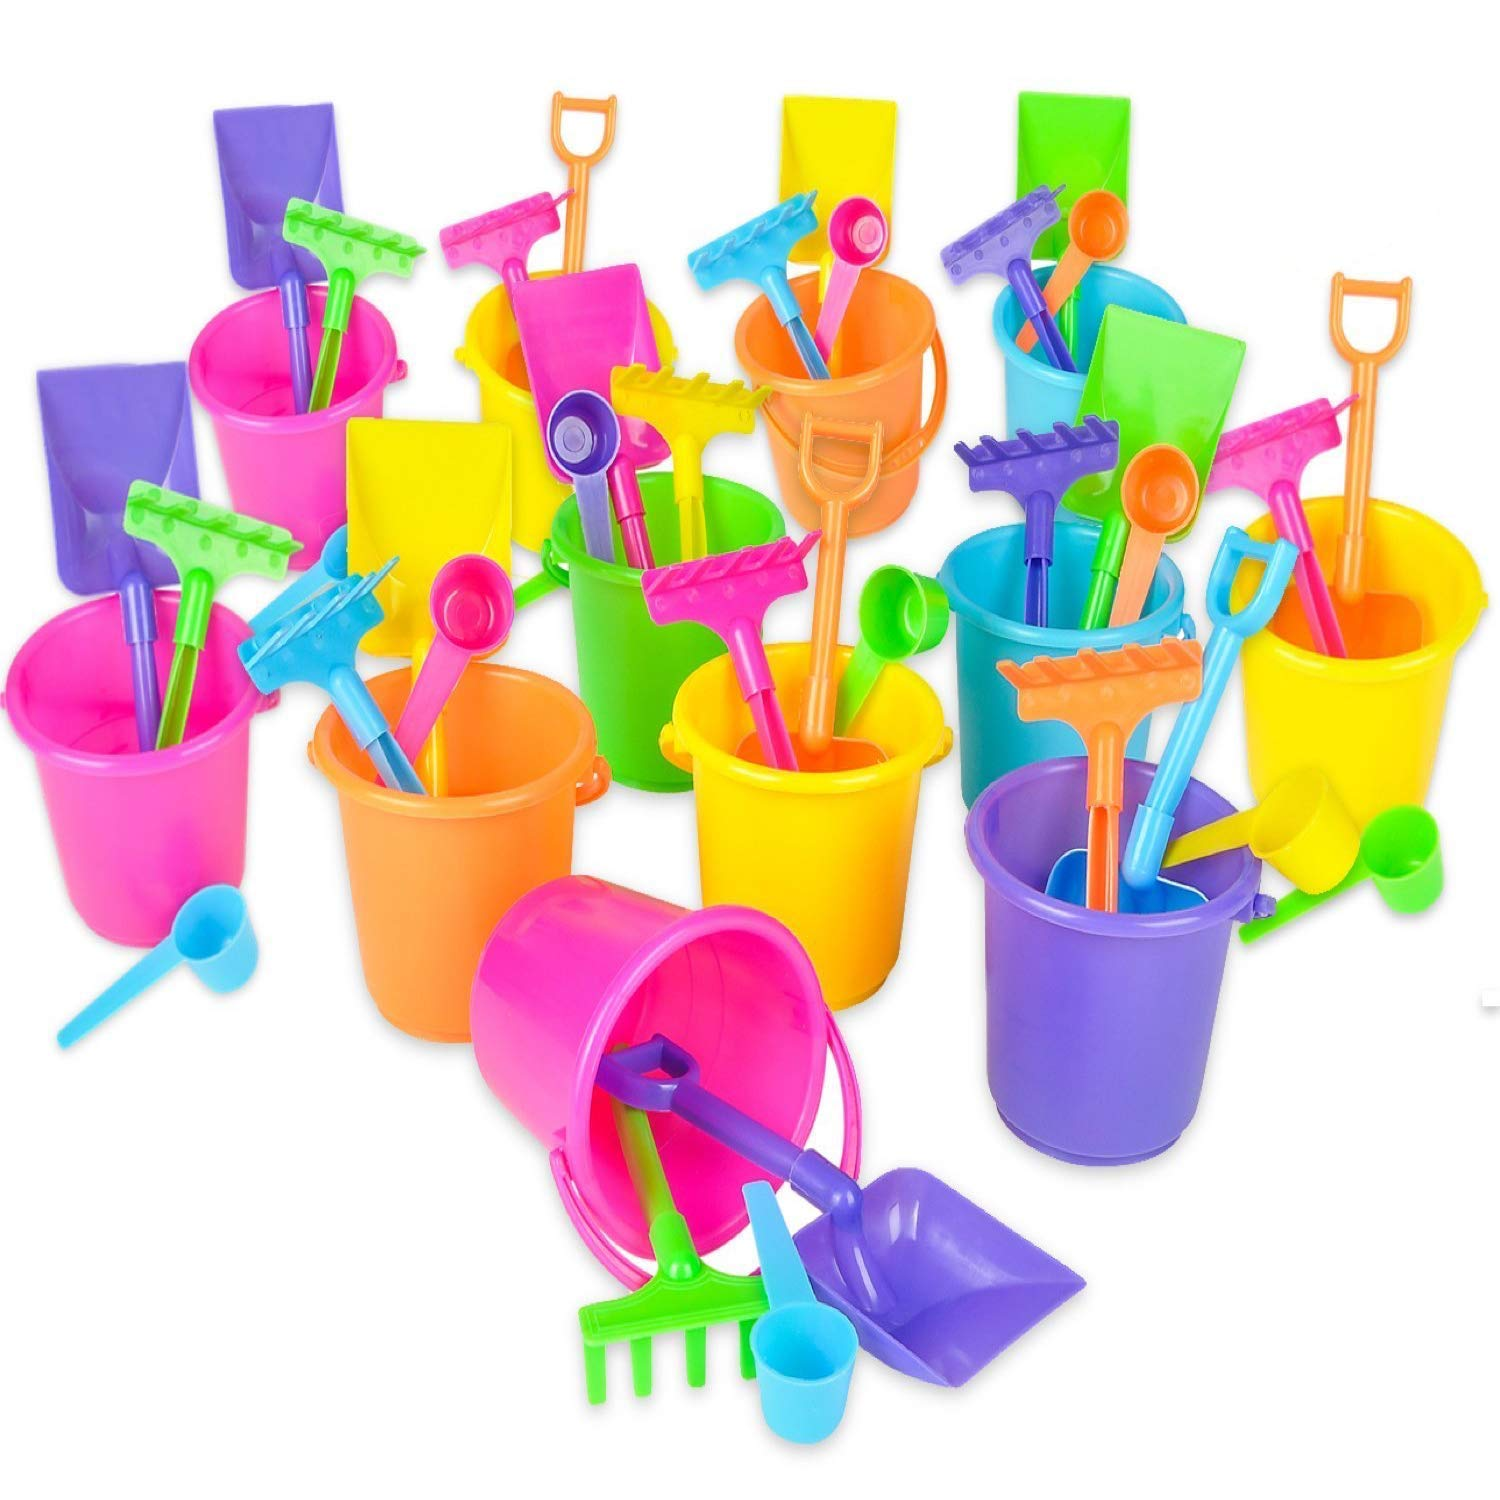 """Beach Bucket and Shovel Set - (Pack of 12) Party Favor Sand Box Play Set and Beach Sand Pail Includes 3-1/4"""" Mini Bucket, Shovel, Rake, Scoop Beach Sand Toy for Birthday Or Mermaid Theme"""